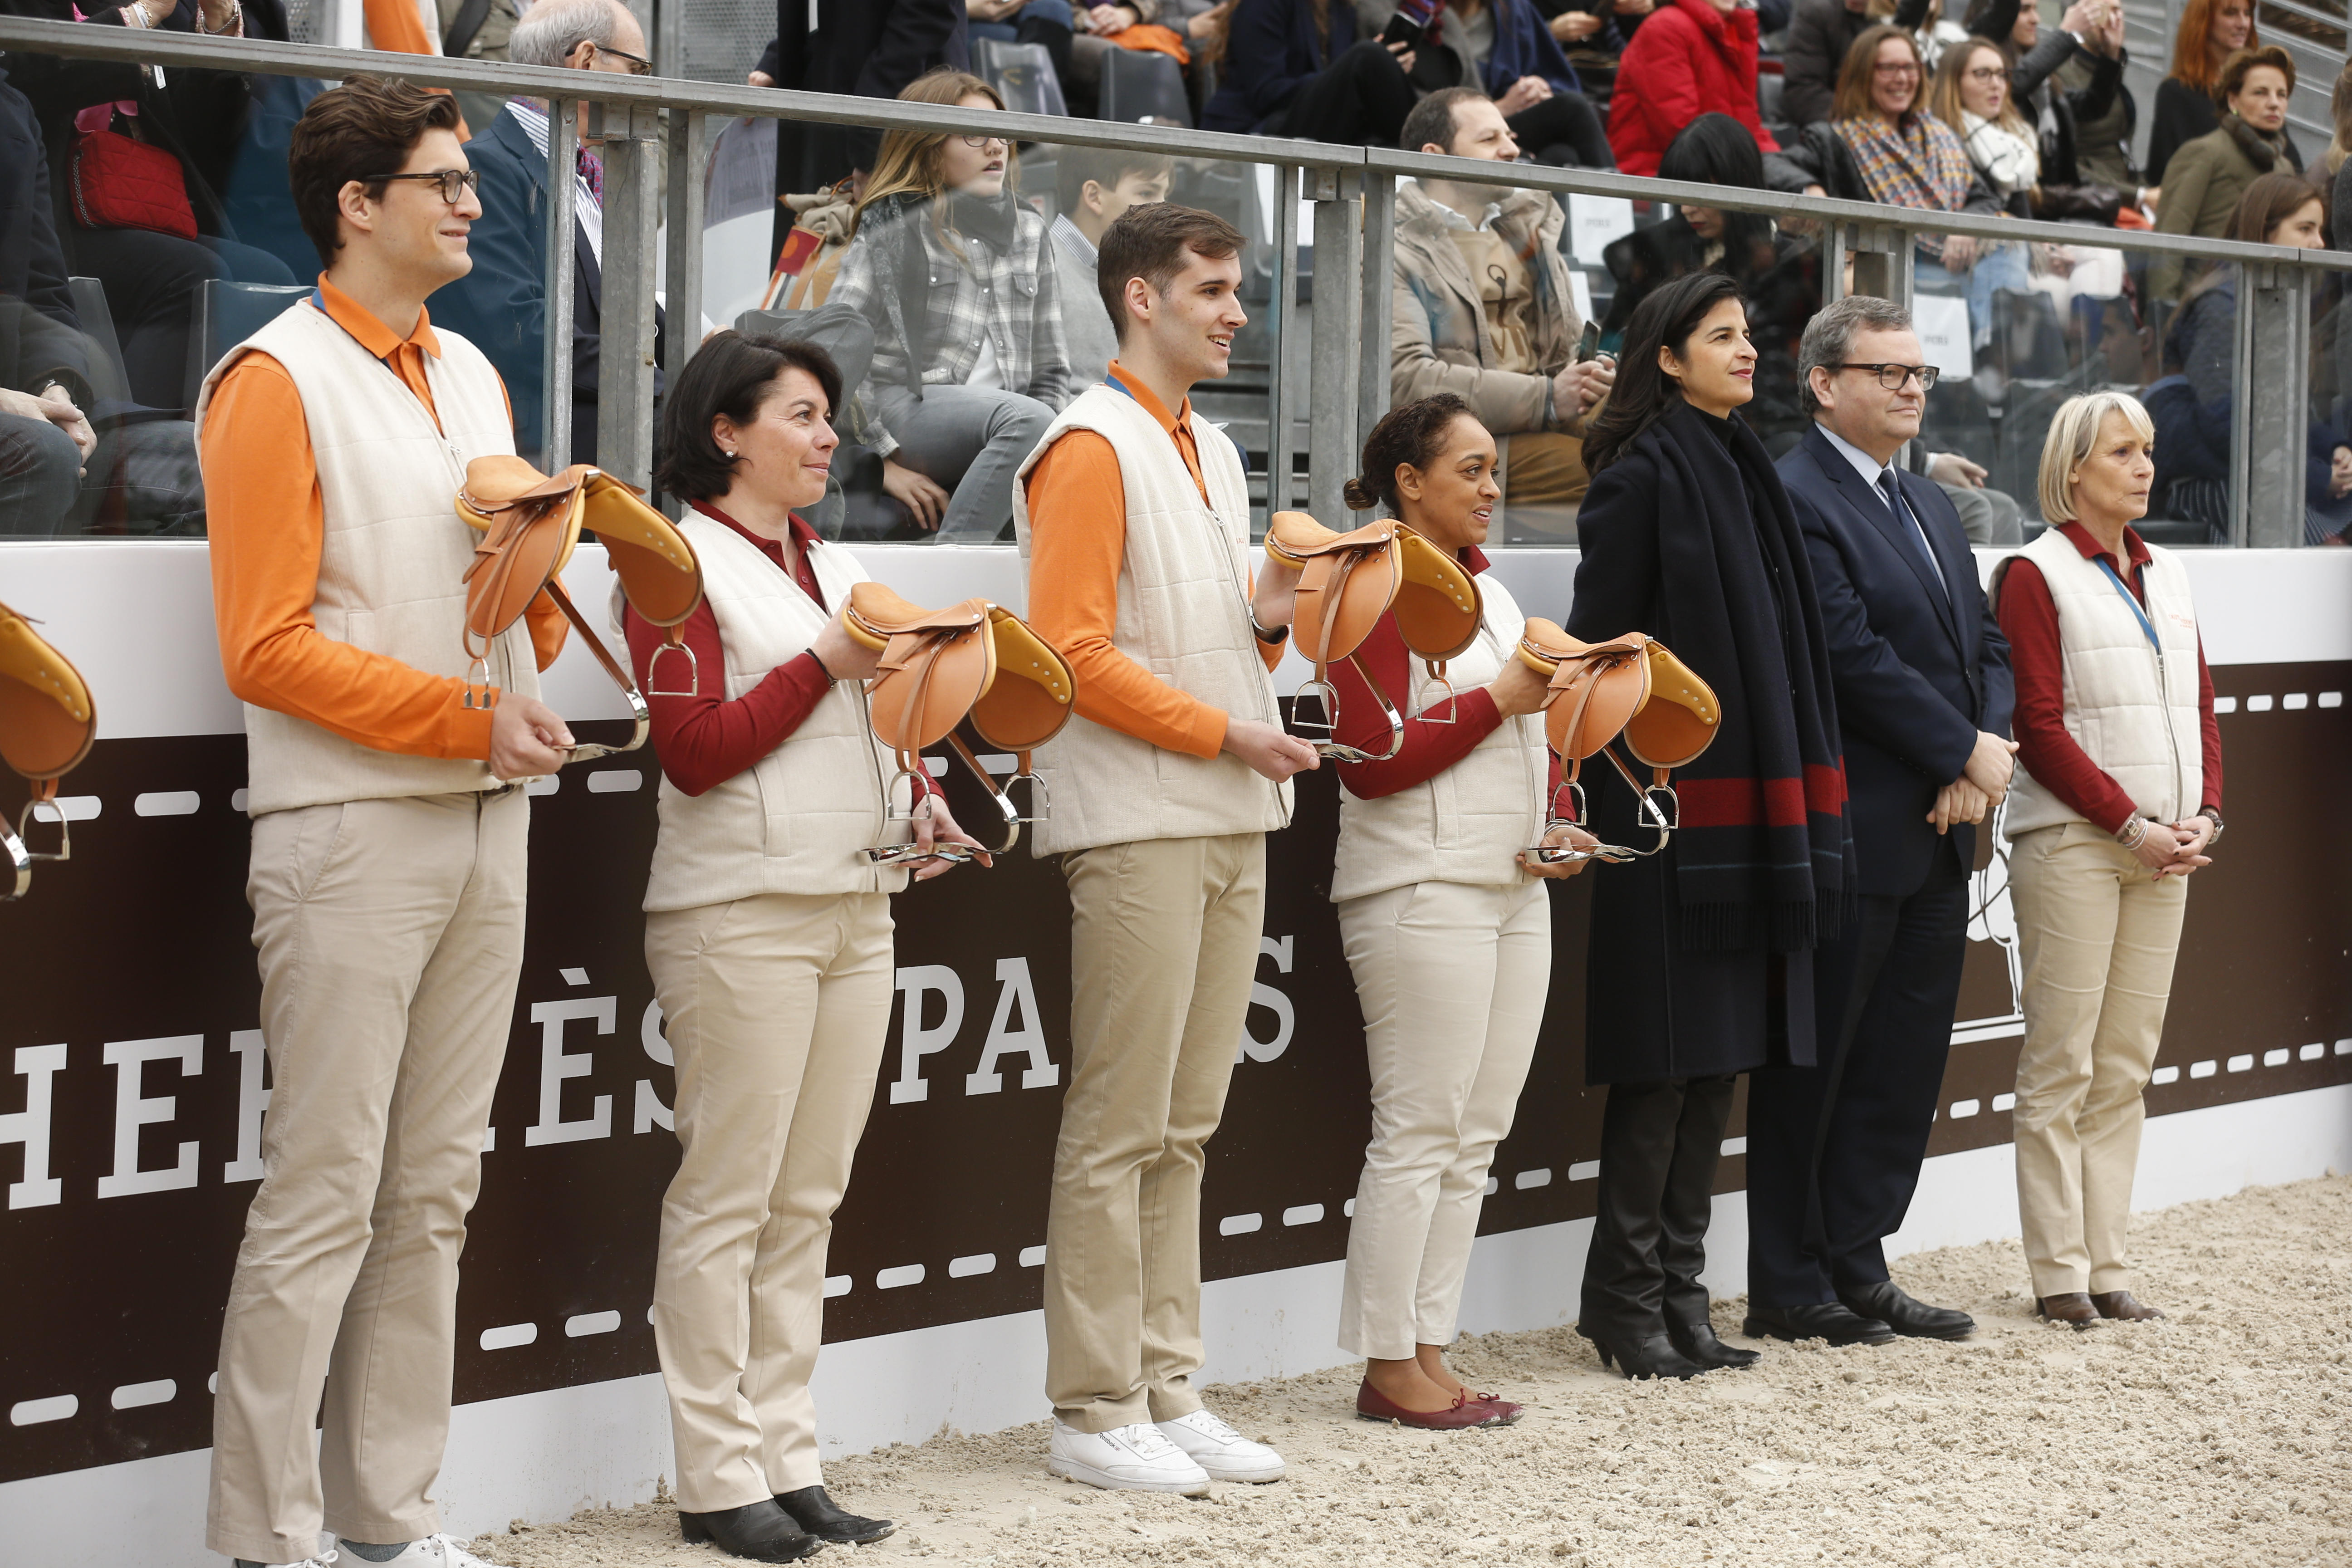 Winners at Saut Hermes are awarded prizes